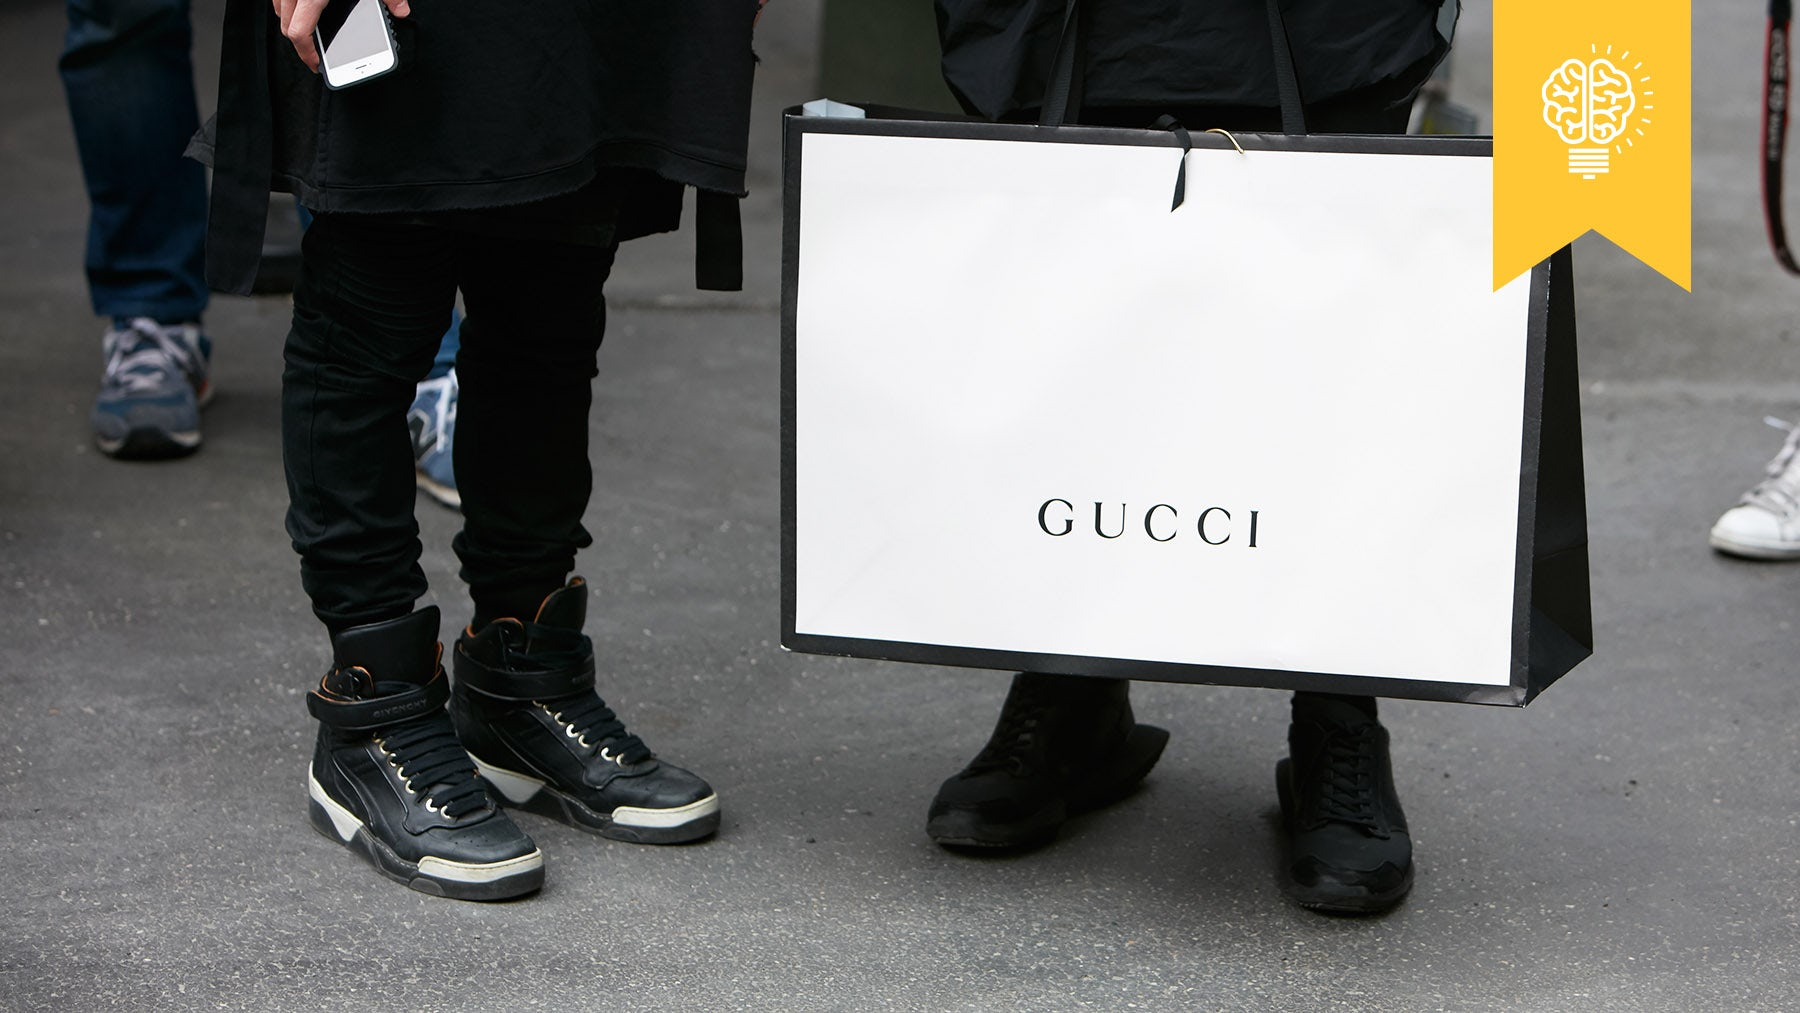 Article cover of The Gucci-Gap Divide: How Luxury Is Winning the Race for Millennial Spend